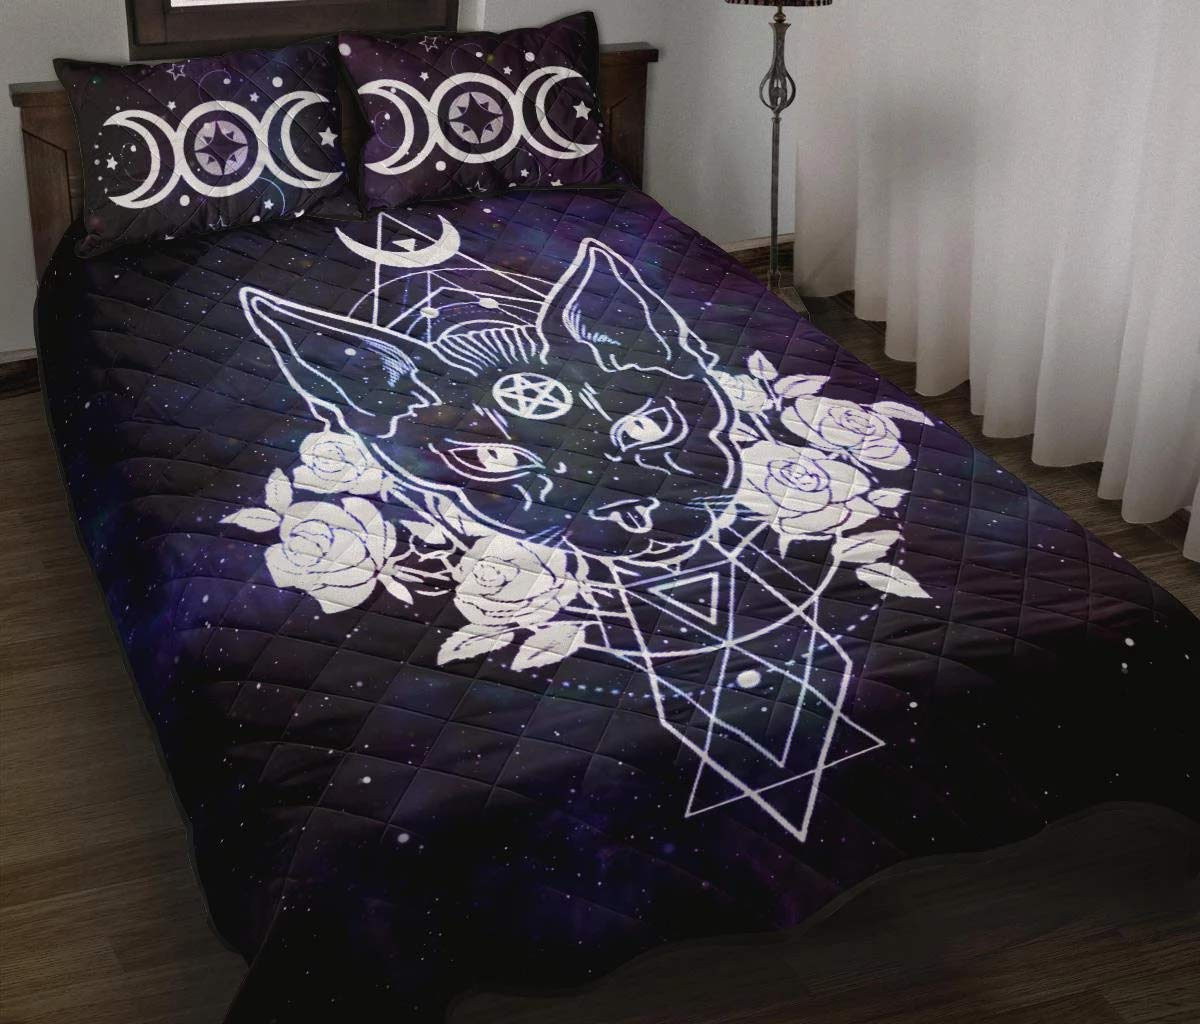 MoonChildWorld Triple Moon Accent Witchy Cat Wicca Pagan Quilt Bed Set